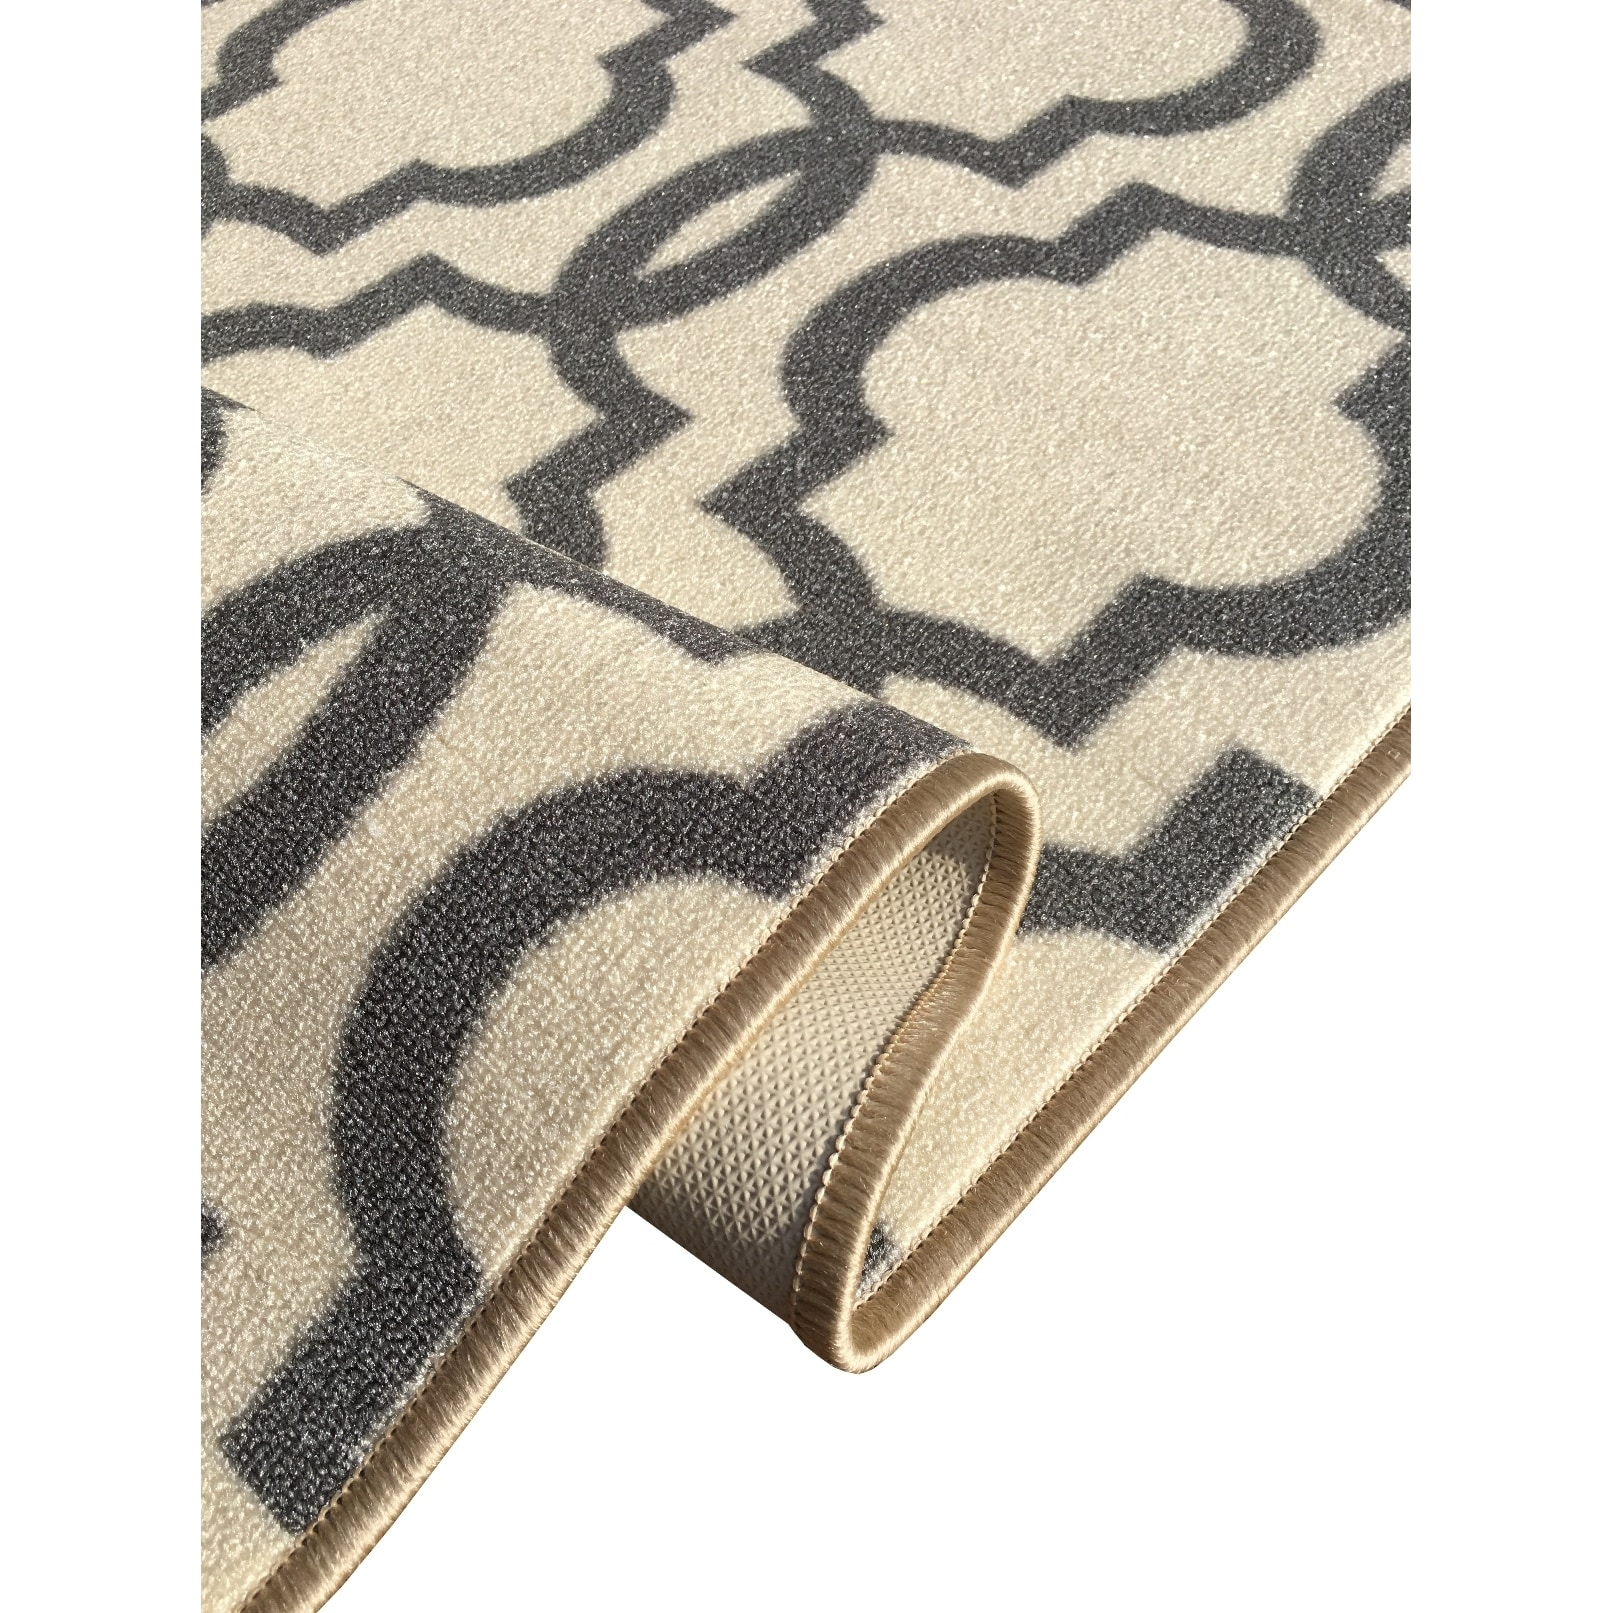 Rubber Backed Accent Rugs